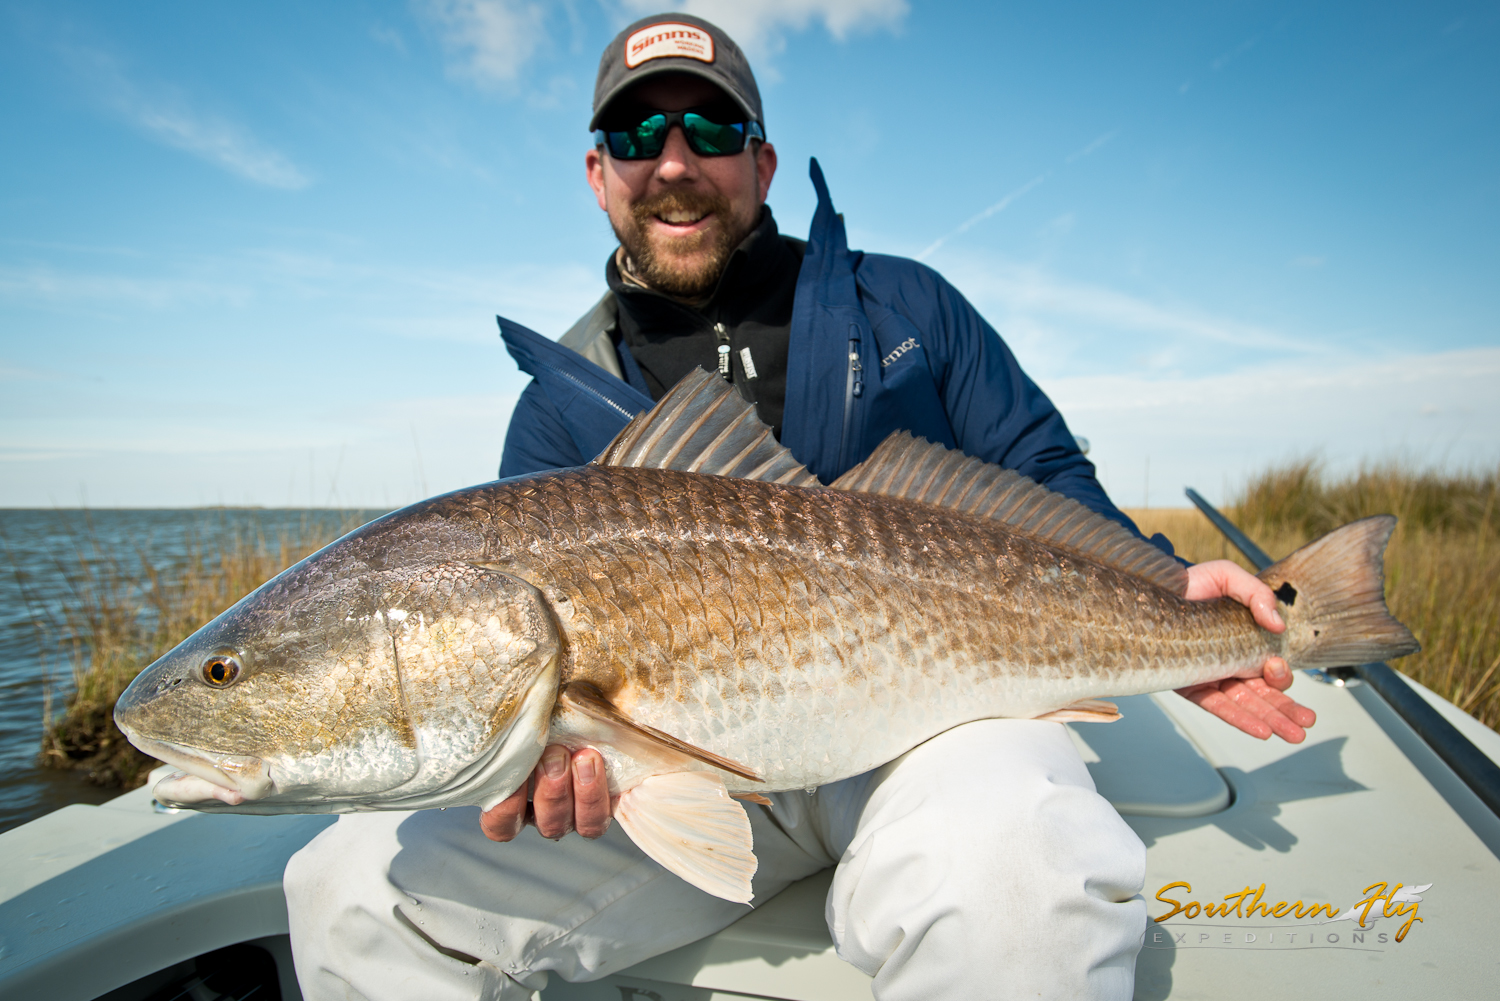 Fly Fishing in the Spring for redfish with southern fly expeditions of New Orleans Louisiana